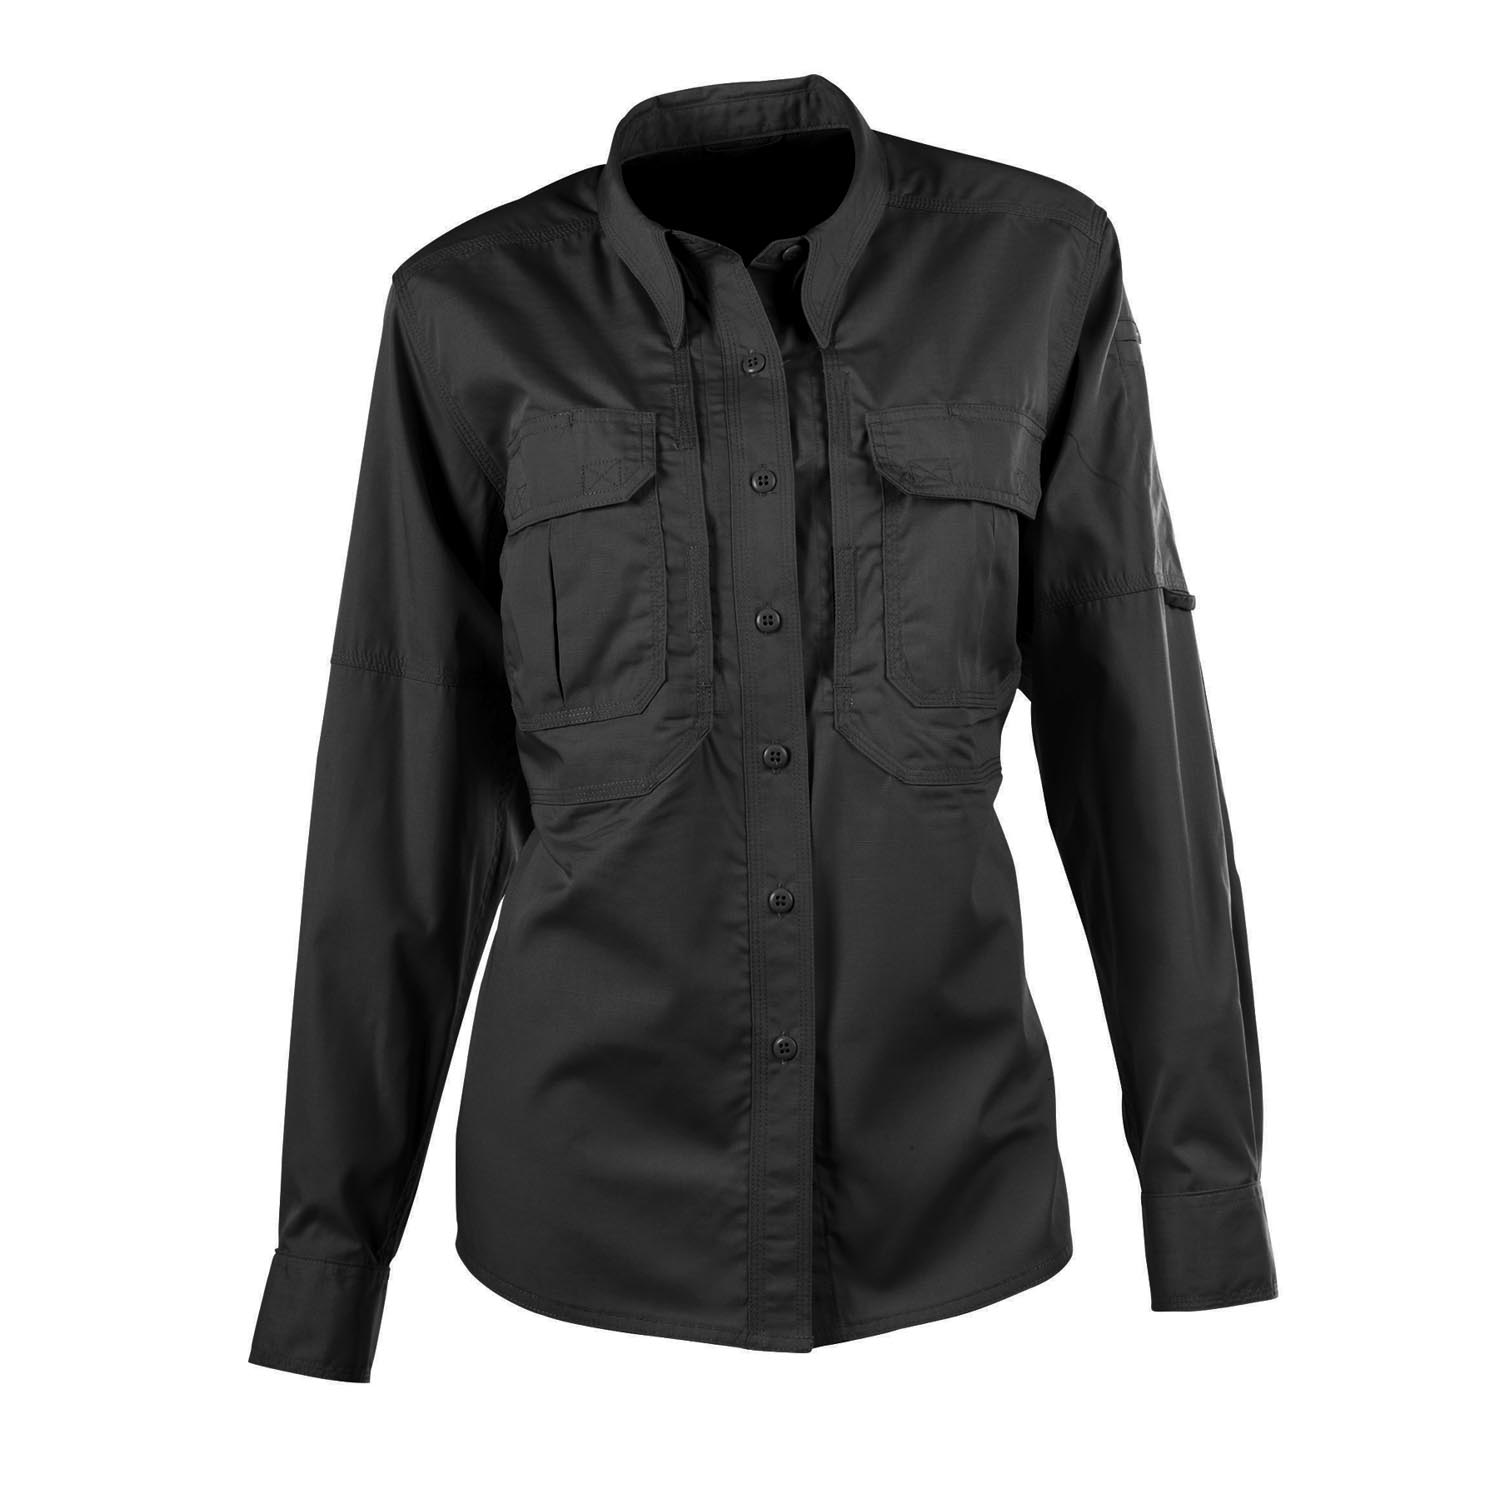 SR932 - WOMENS TACTLITE LONG SLEEVE SHIRT